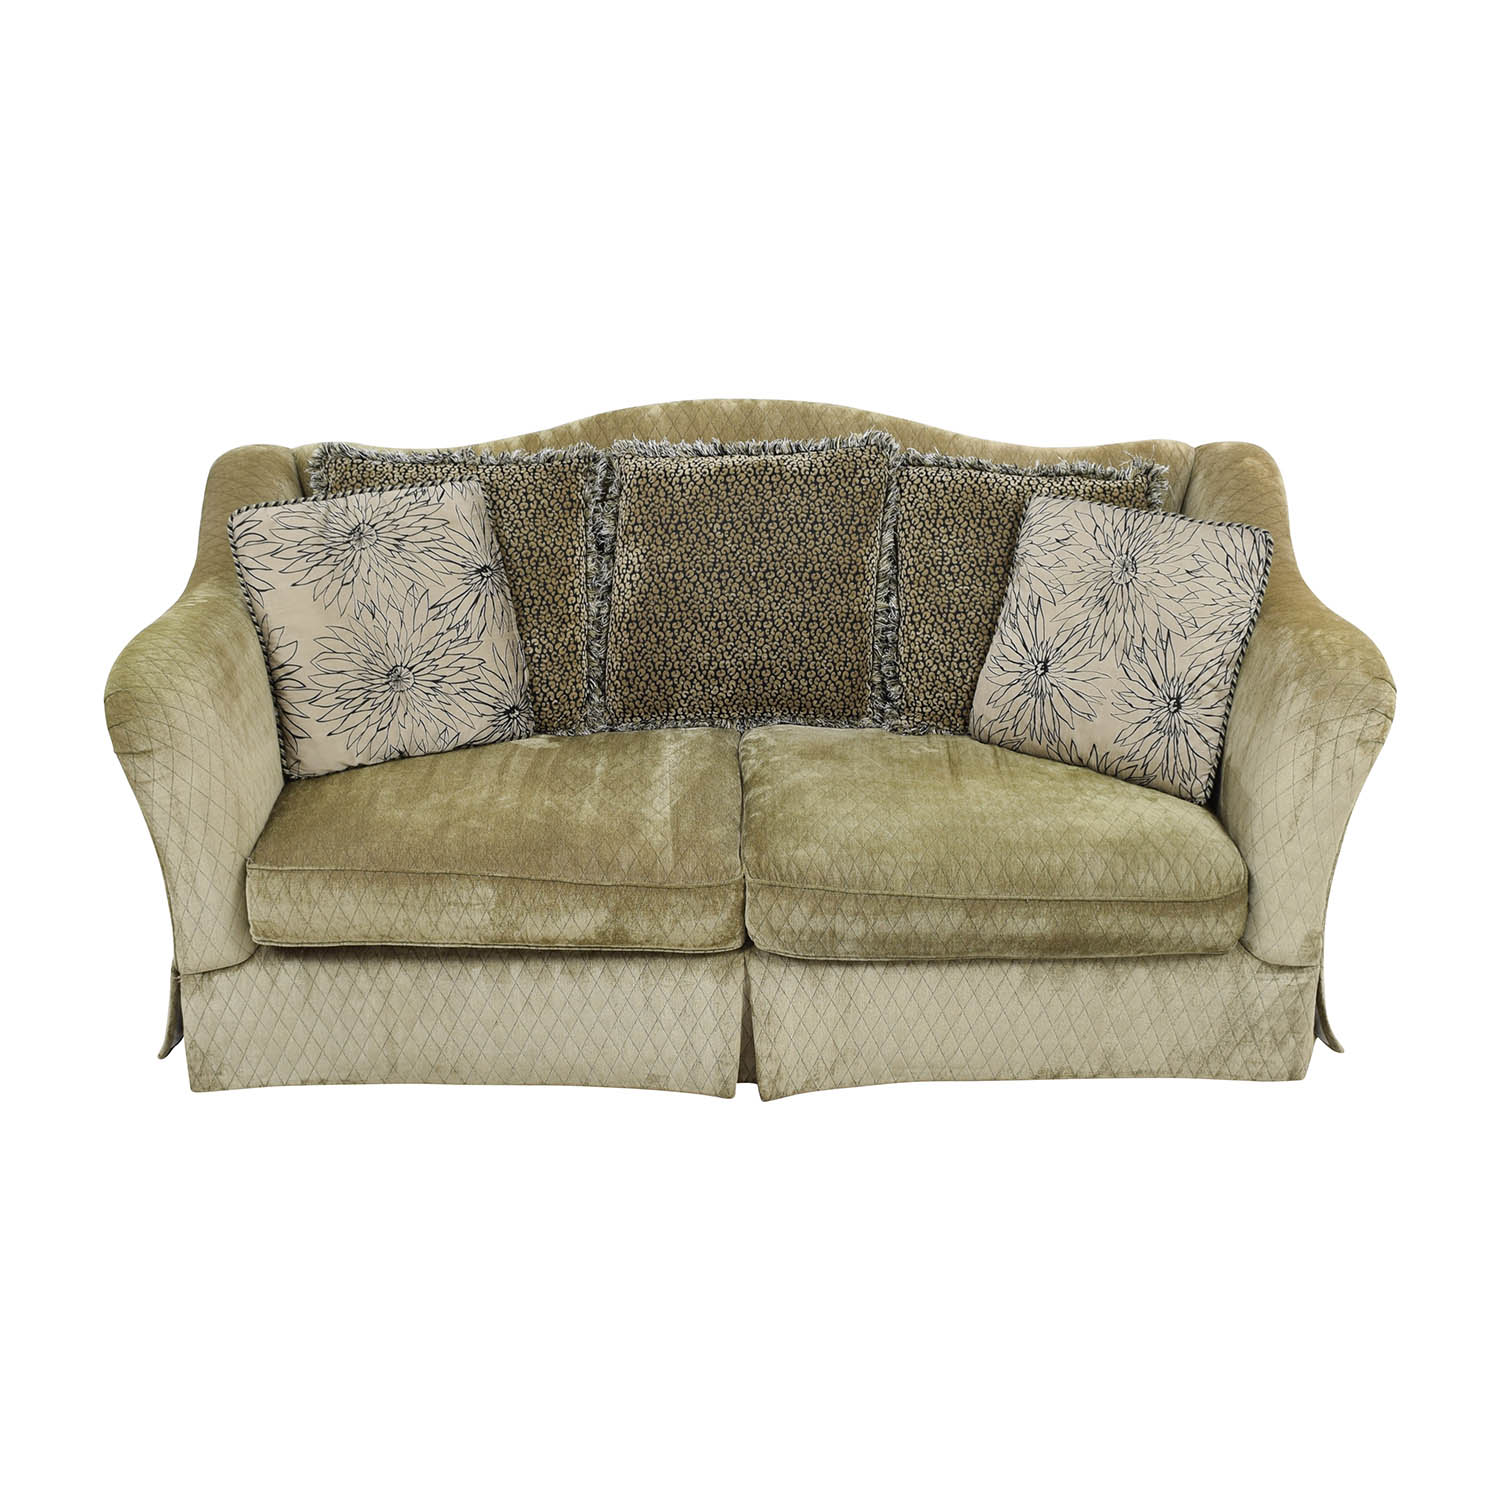 buy Raymour & Flanigan Green Quilted Two-Cushion Sofa Raymour and Flanigan